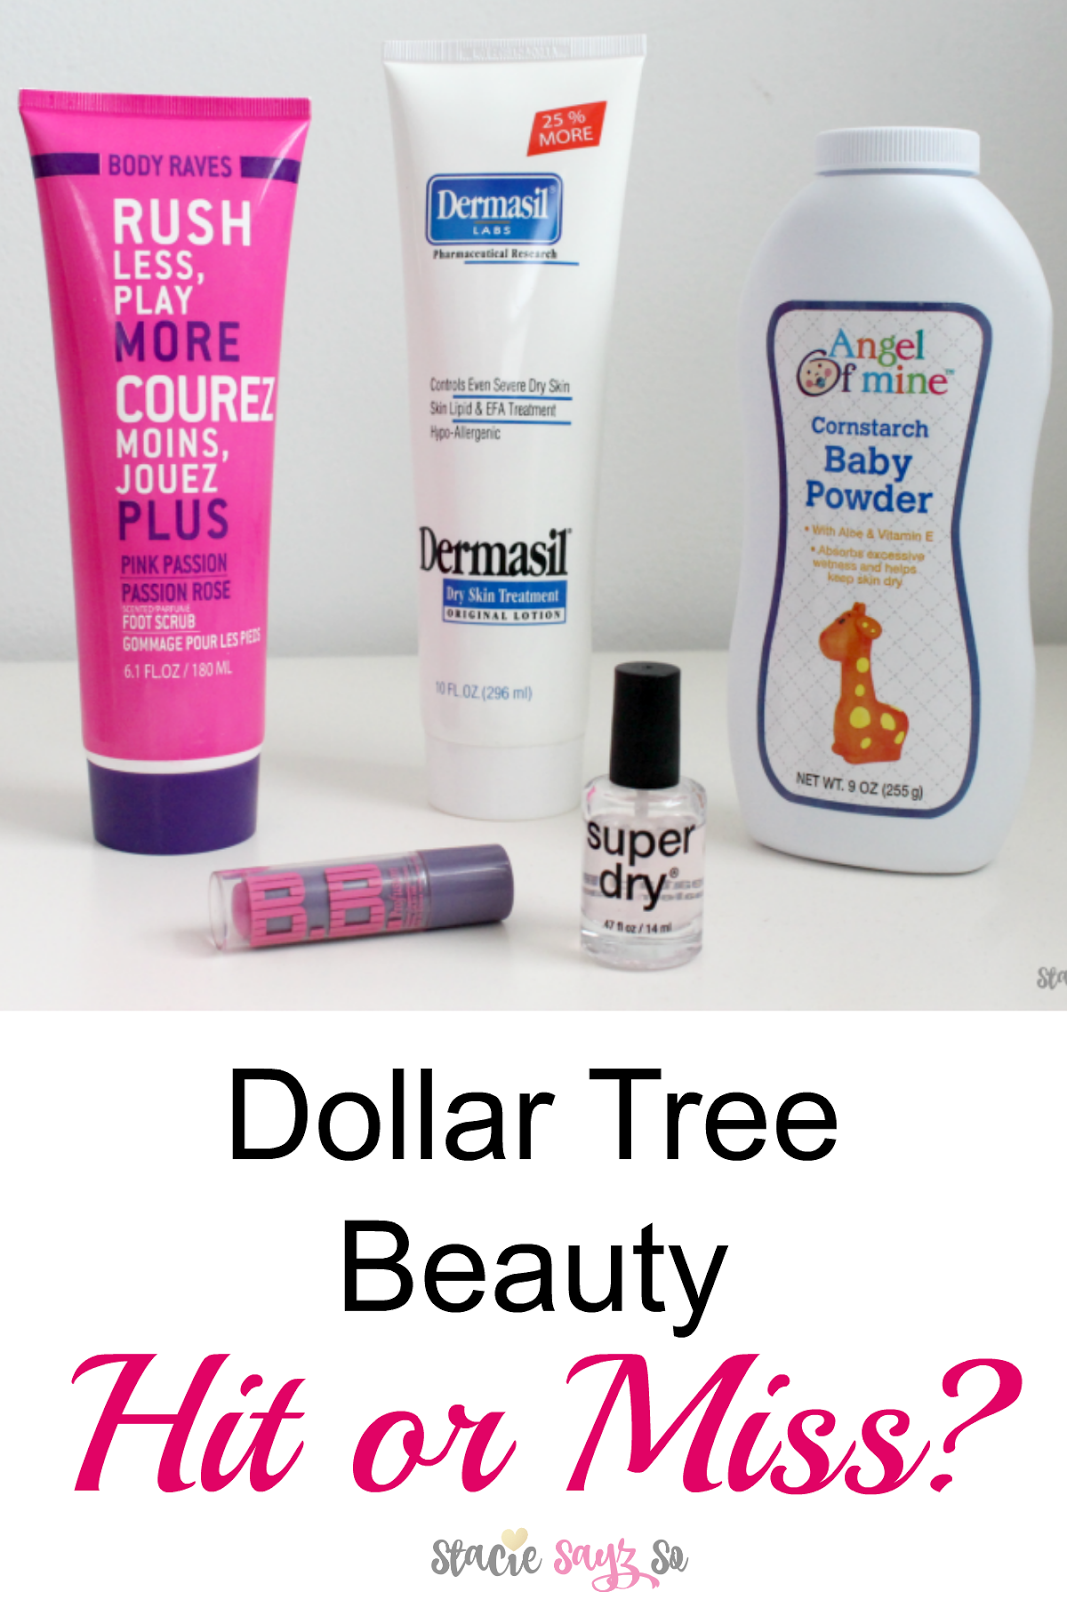 Dollar Tree Beauty Hit or Miss? Have you ever wondered